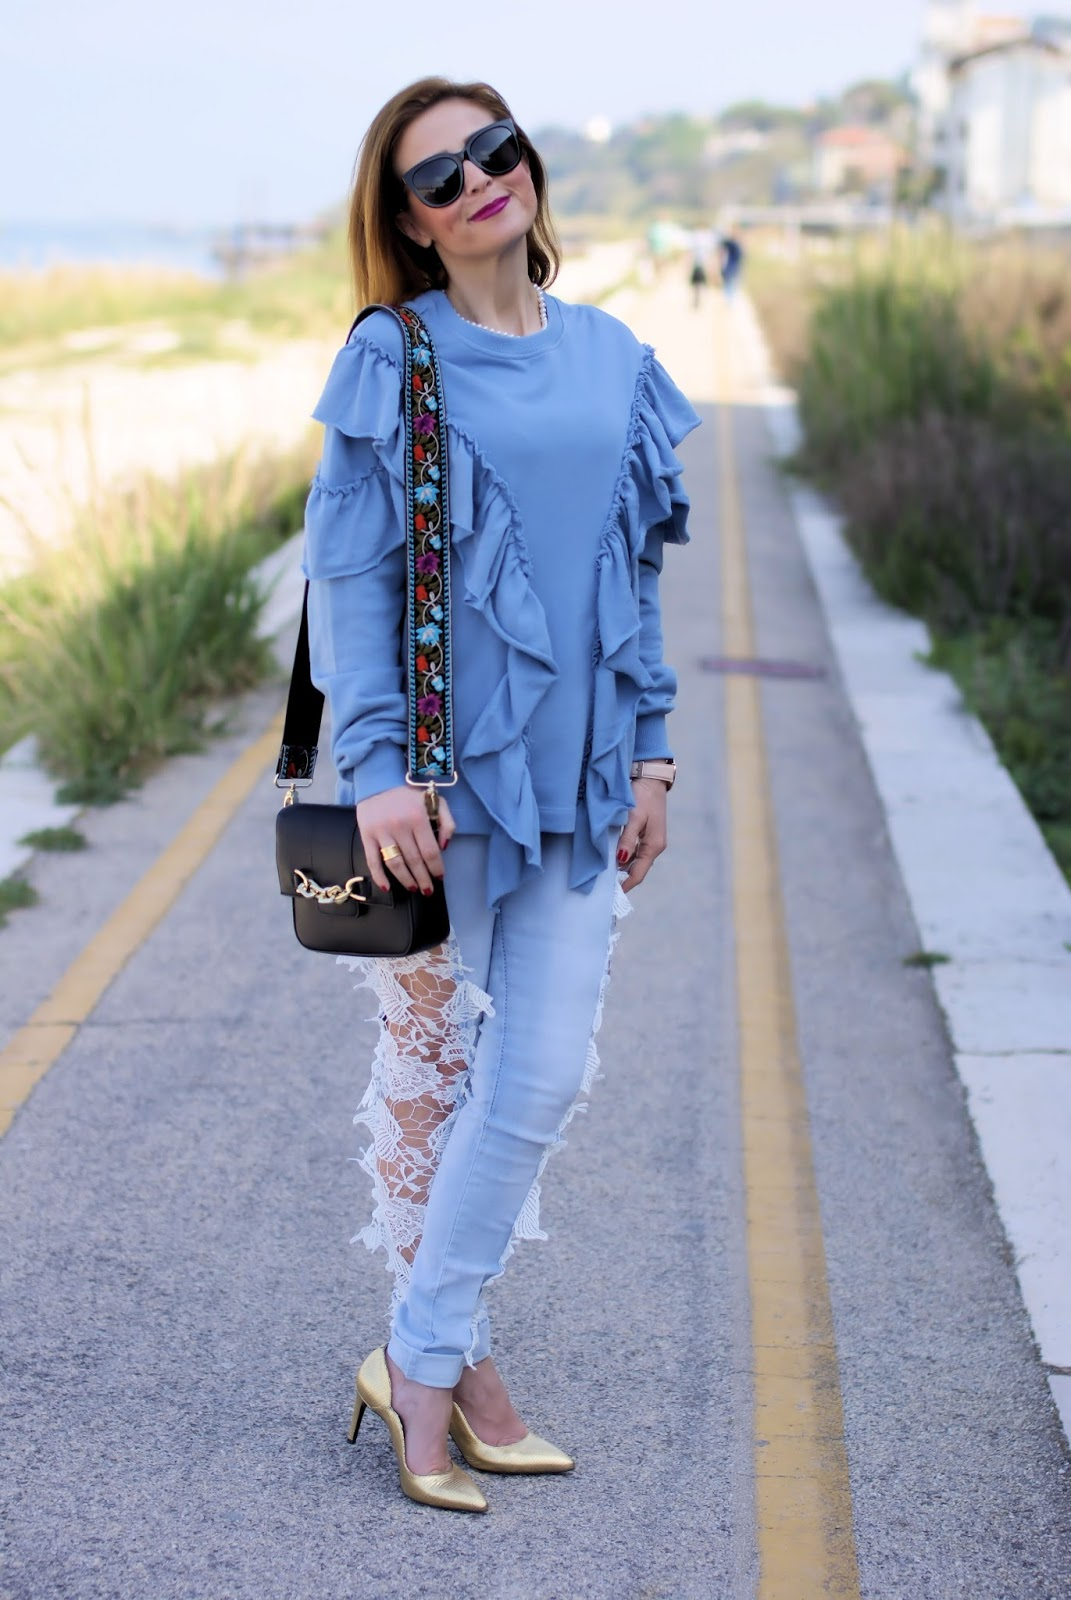 Lace cut out jeans found on Sammydress and ruffled sweatshirt for a daytime outfit idea on Fashion and Cookies fashion blog, fashion blogger style